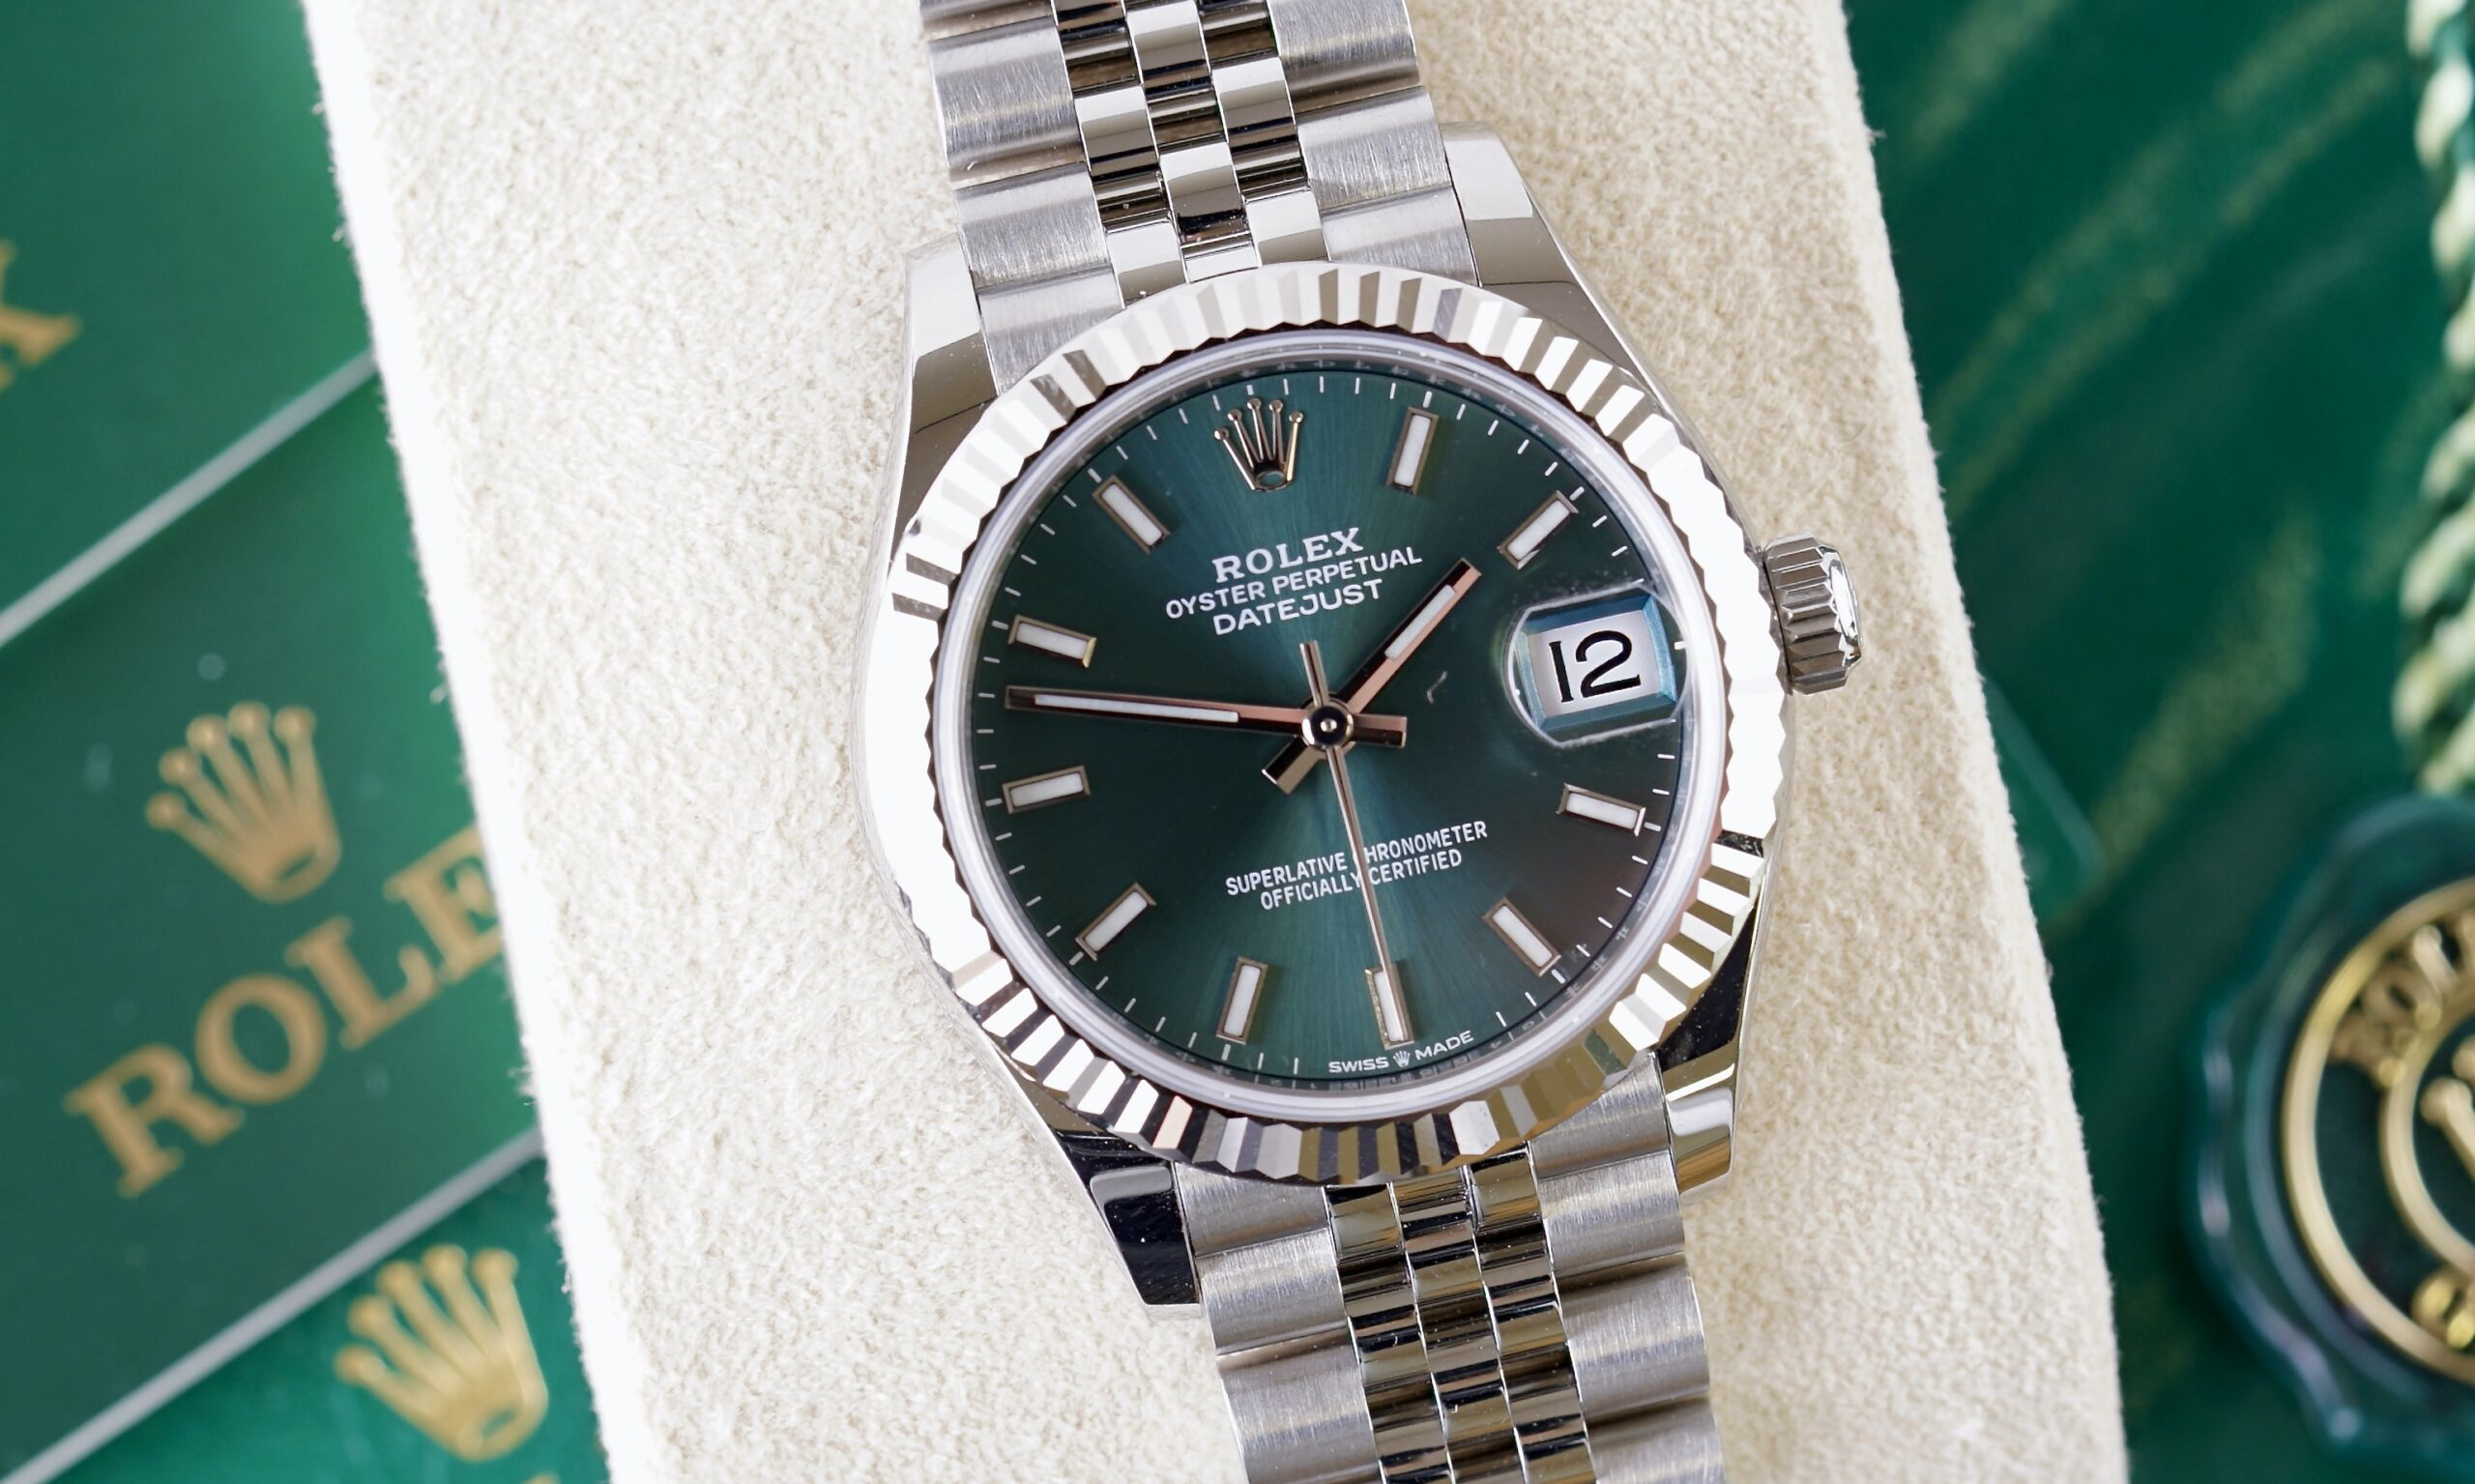 https://langedykvintagewatches.com/product-categorie/rolex-brands/datejust-lady/